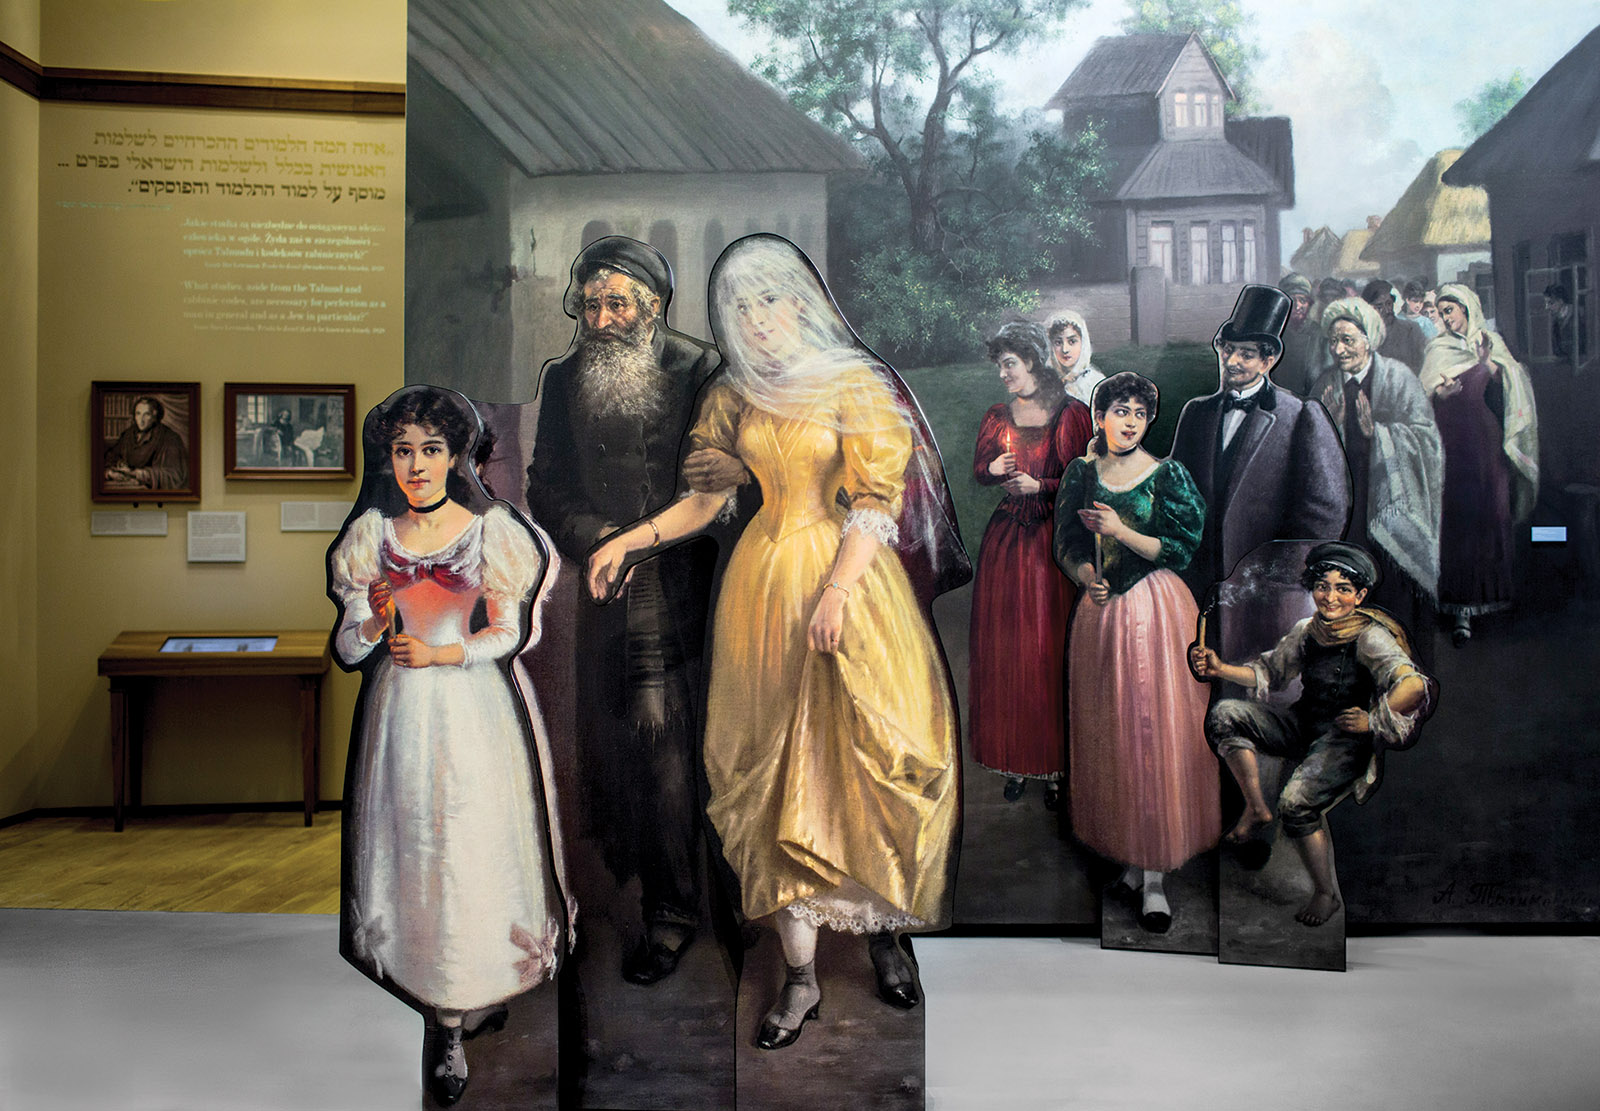 'Jewish Wedding,' 1890s; from a display at the POLIN Museum of the History of Polish Jews, Warsaw